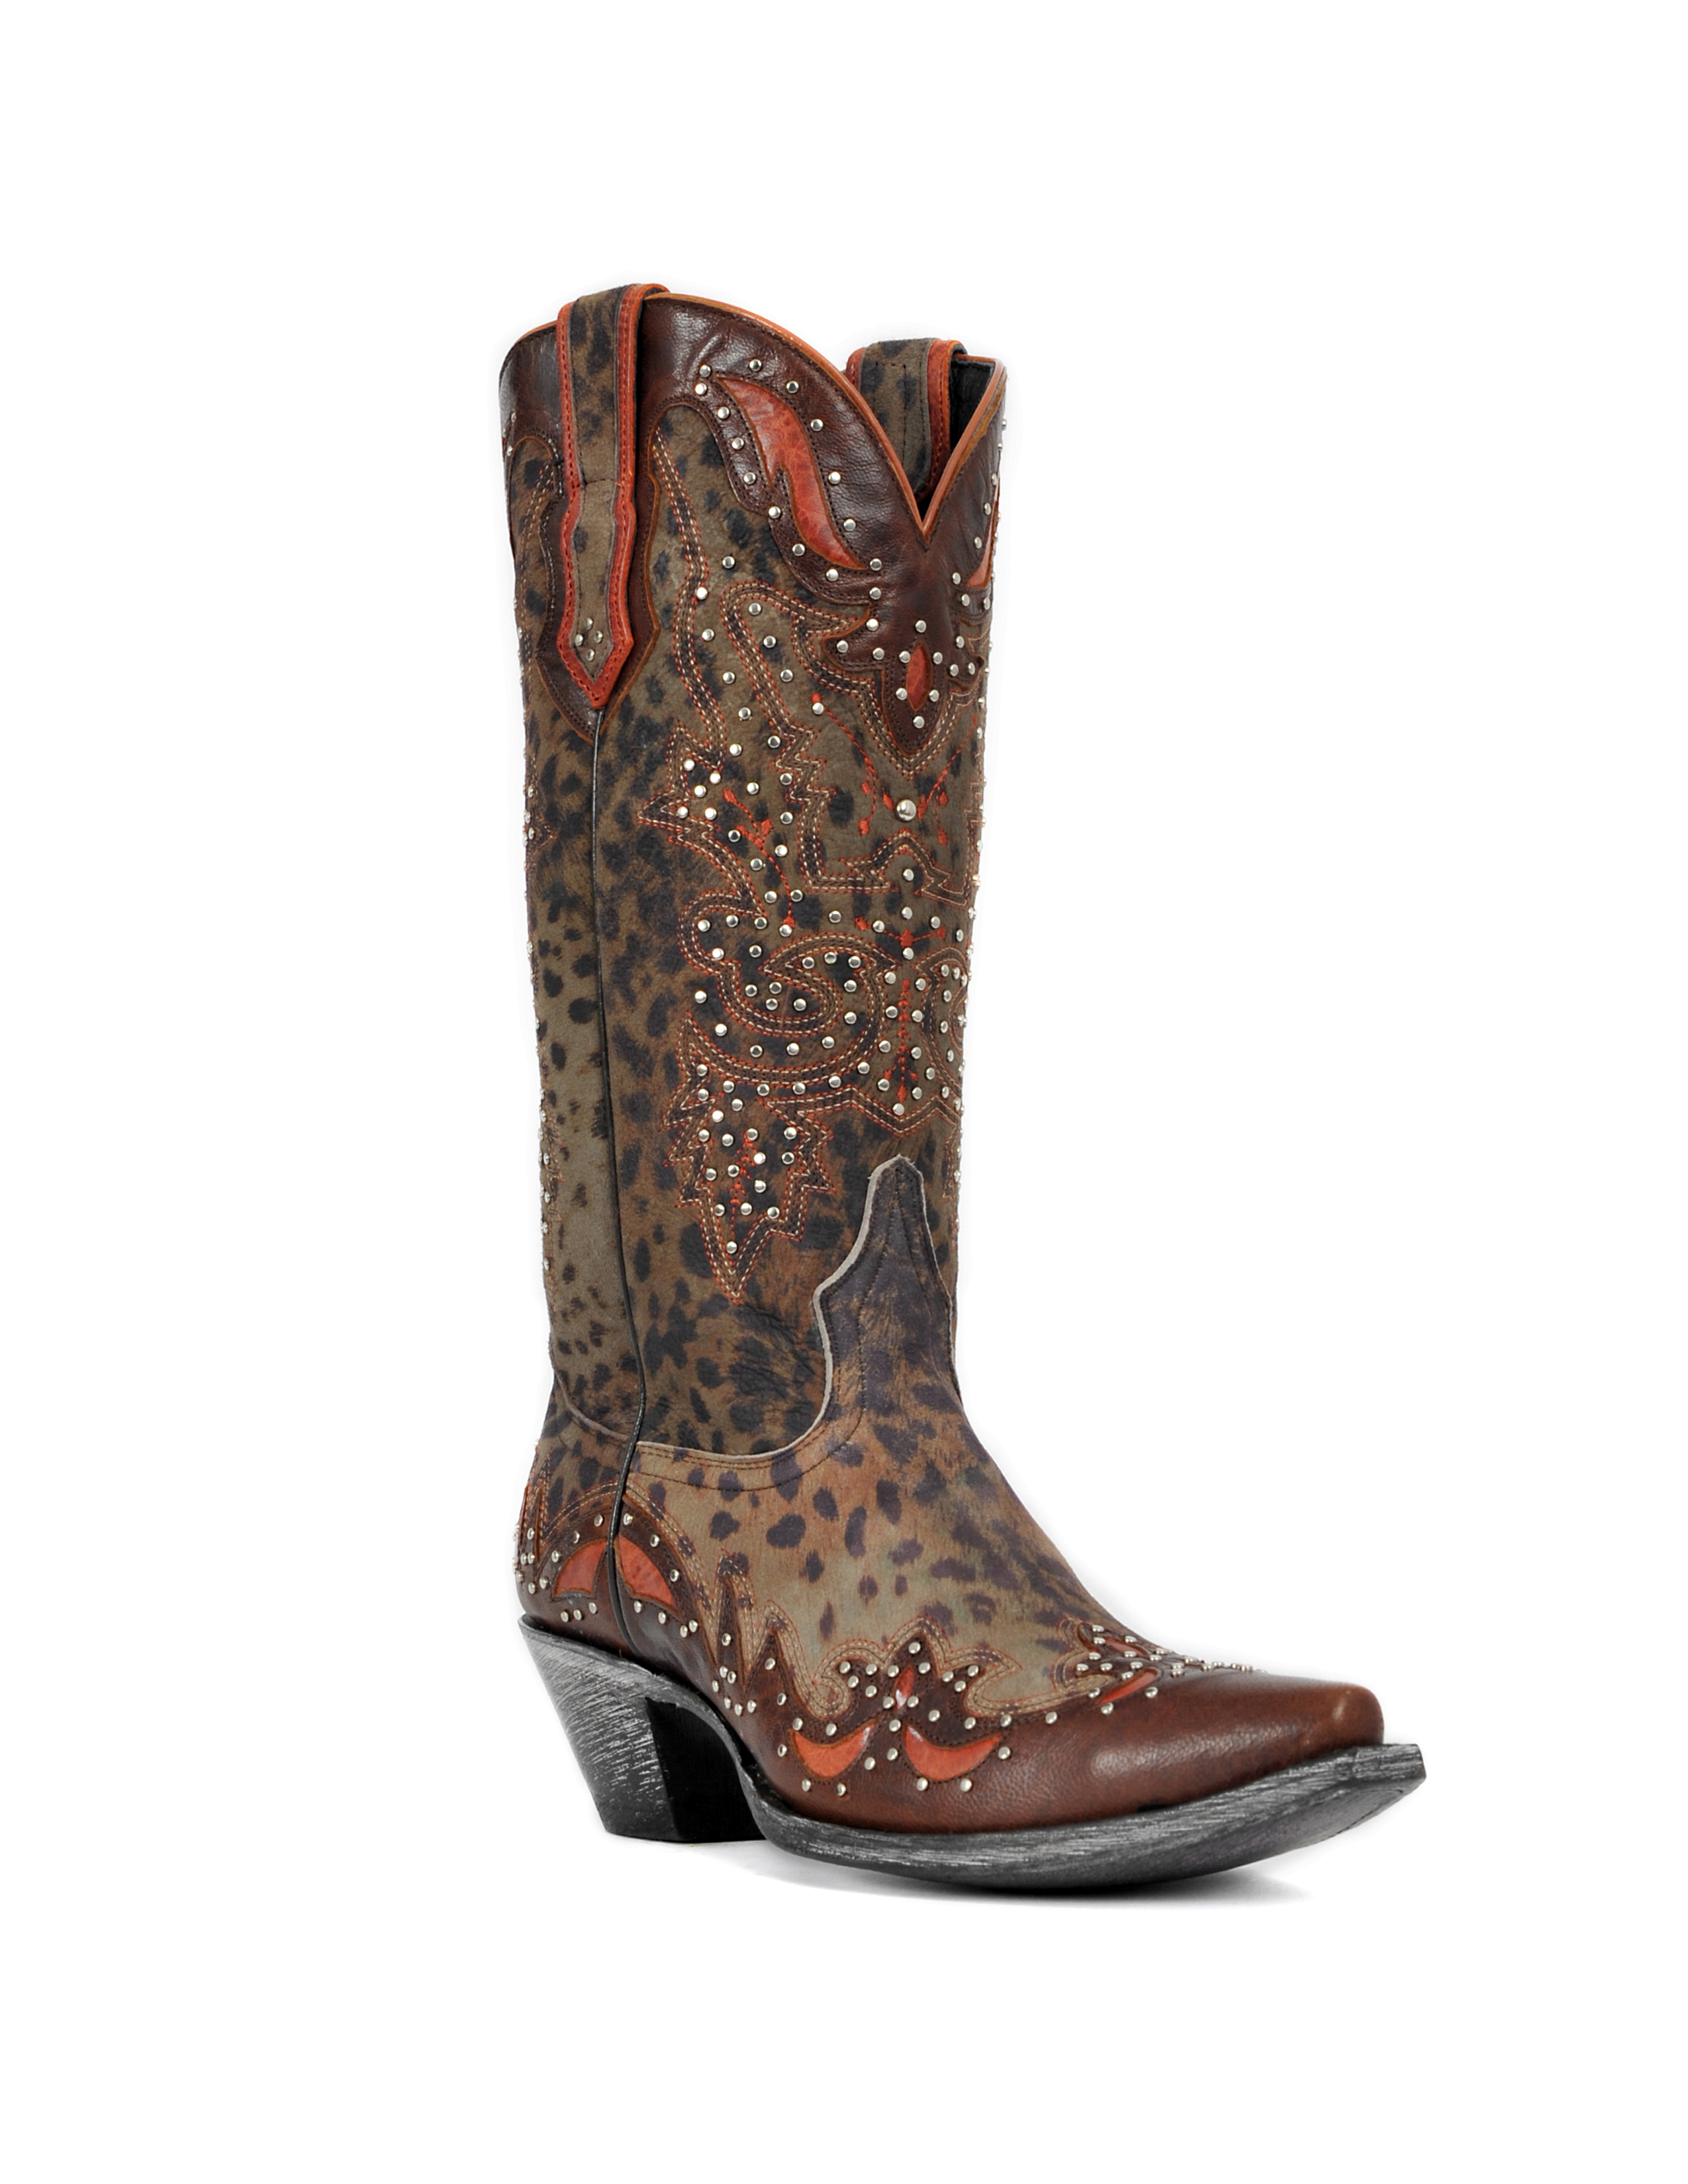 Johnny Ringo Women's Grey Cheetah Print Western Boots JR922-52T